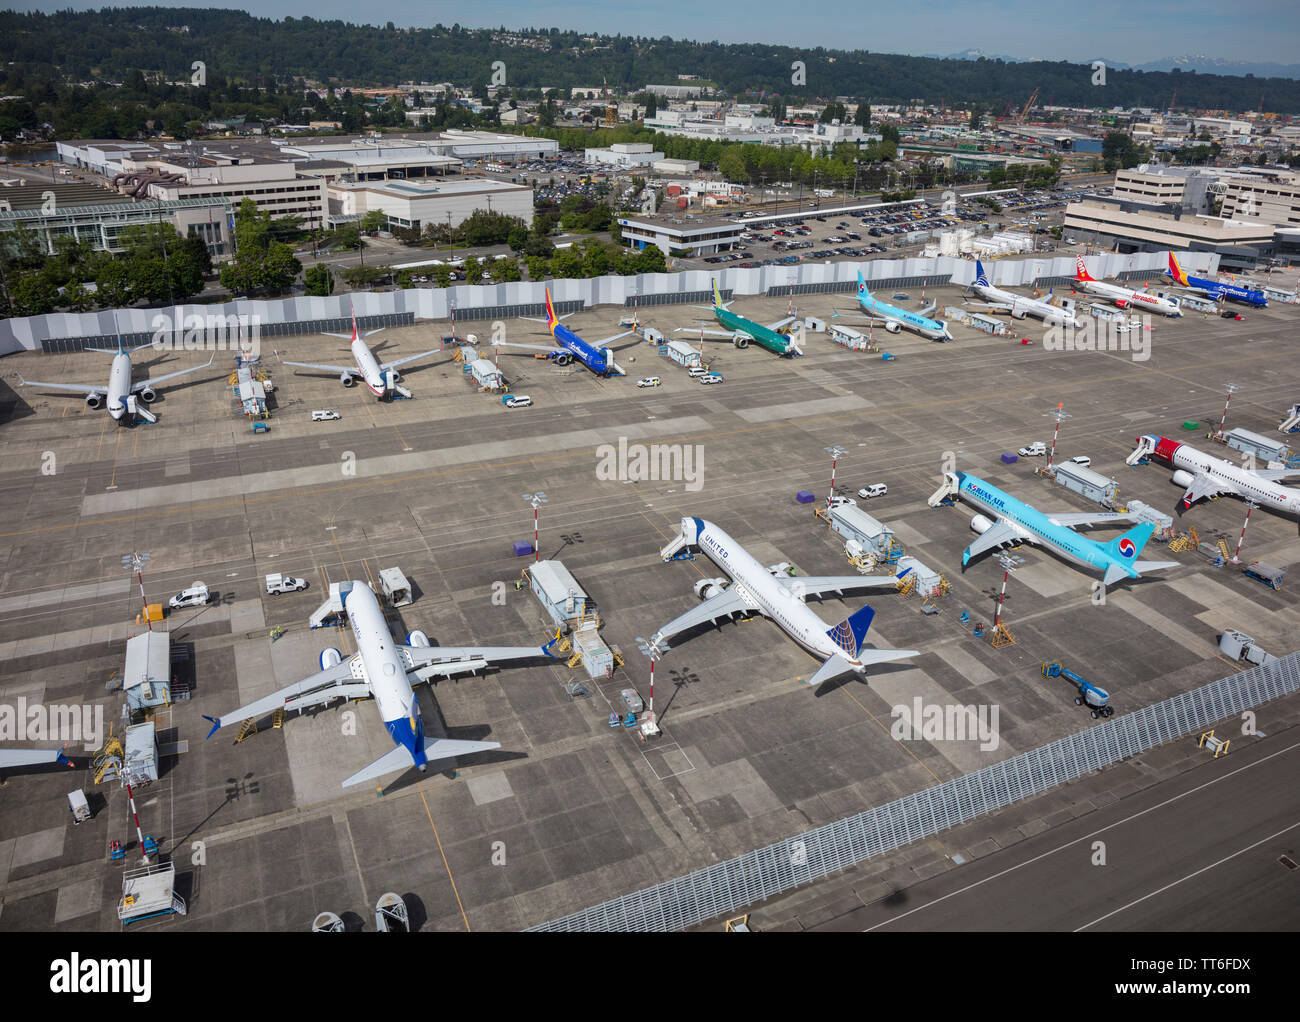 June 2019: Boeing 737 Max aircraft grounded at Boeing Field factory near Seattle, Washington, USA, during the crisis caused by unsafe software - Stock Image